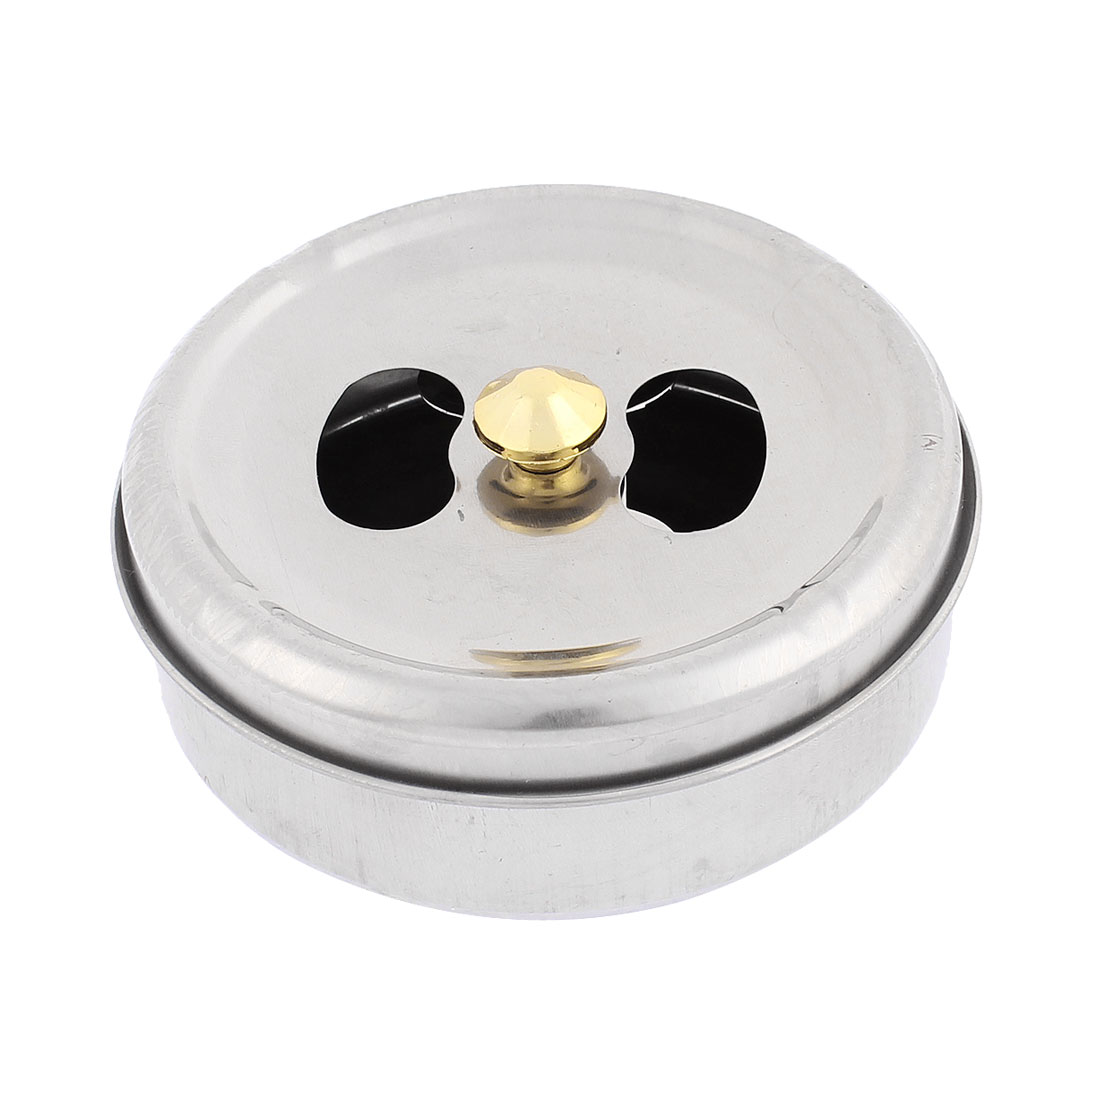 Cylinder Shape Rotating Lid Cigarette Holder Ashtray